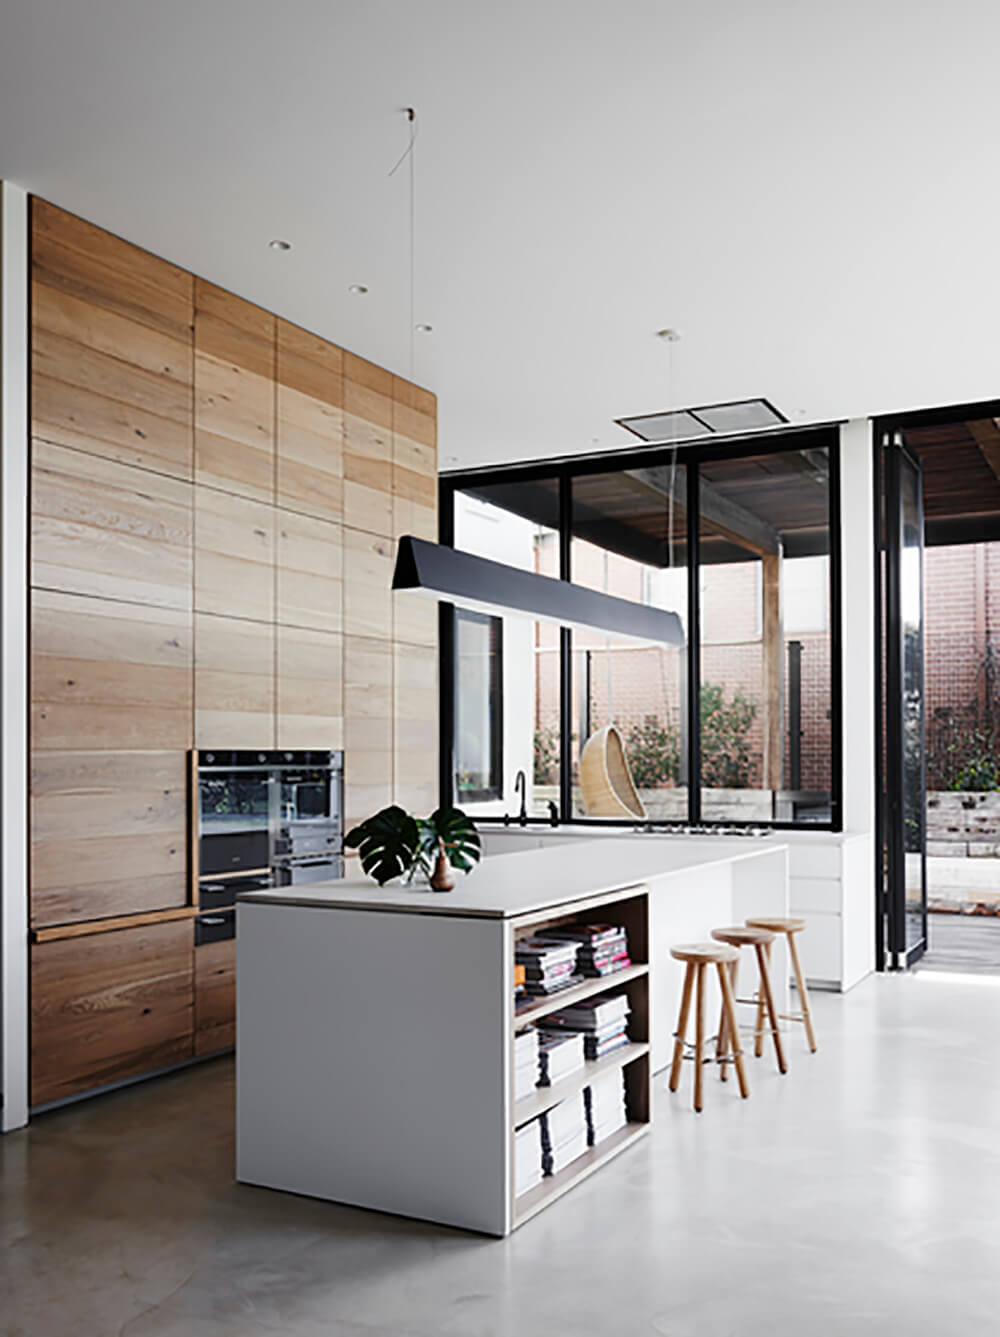 Just beyond the large windows, we can see the sprawling deck and walled-in backyard to the right. The glass panels retract to open the kitchen and living room up to this area.